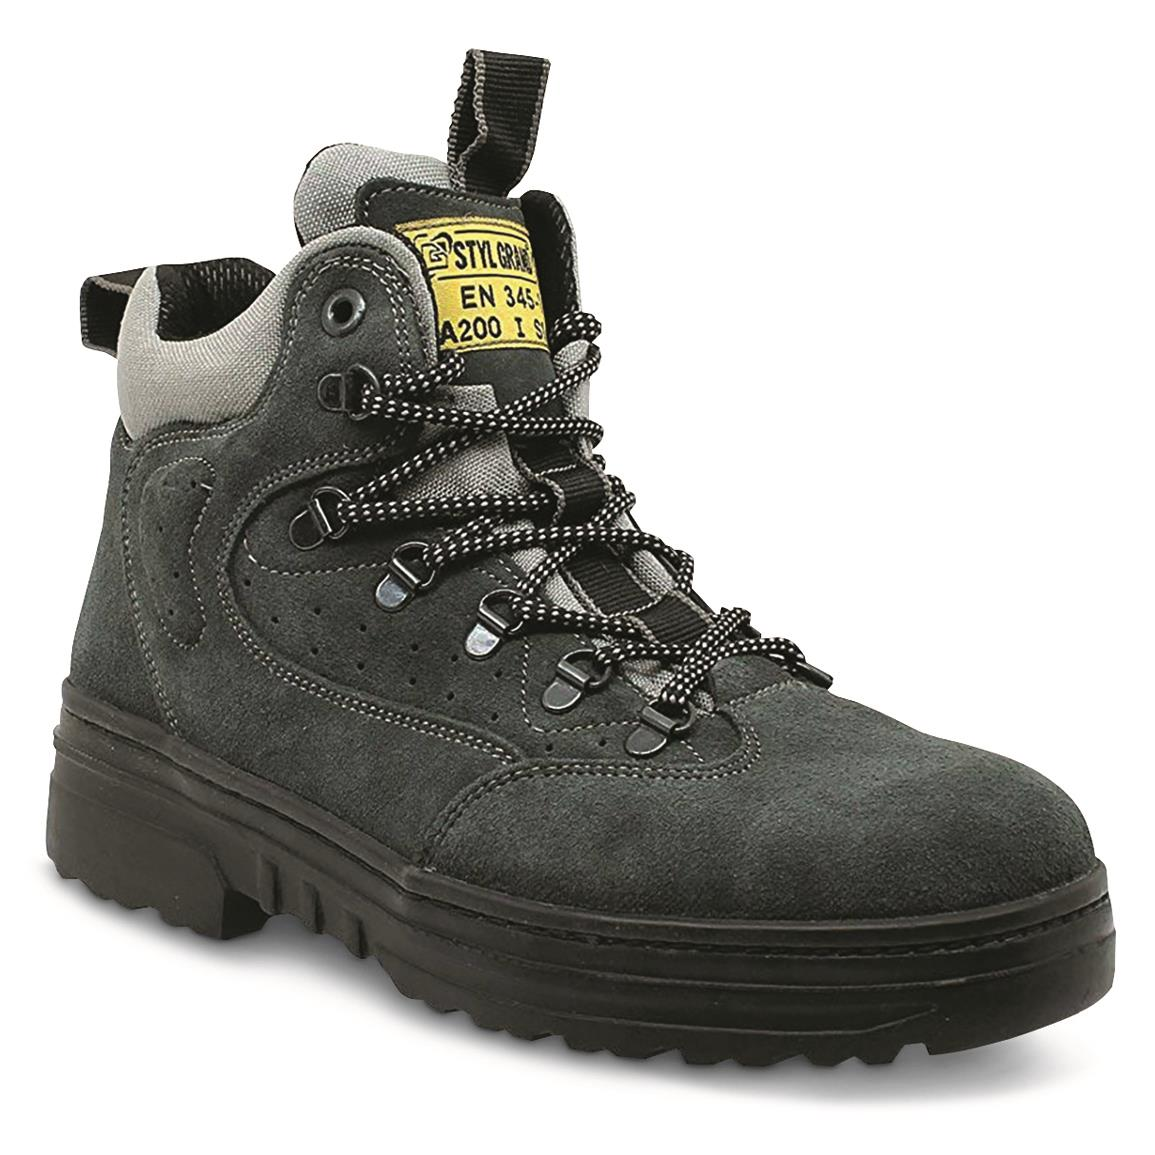 "Italian Military Surplus 6"" Safety Toe Work Boots, New"